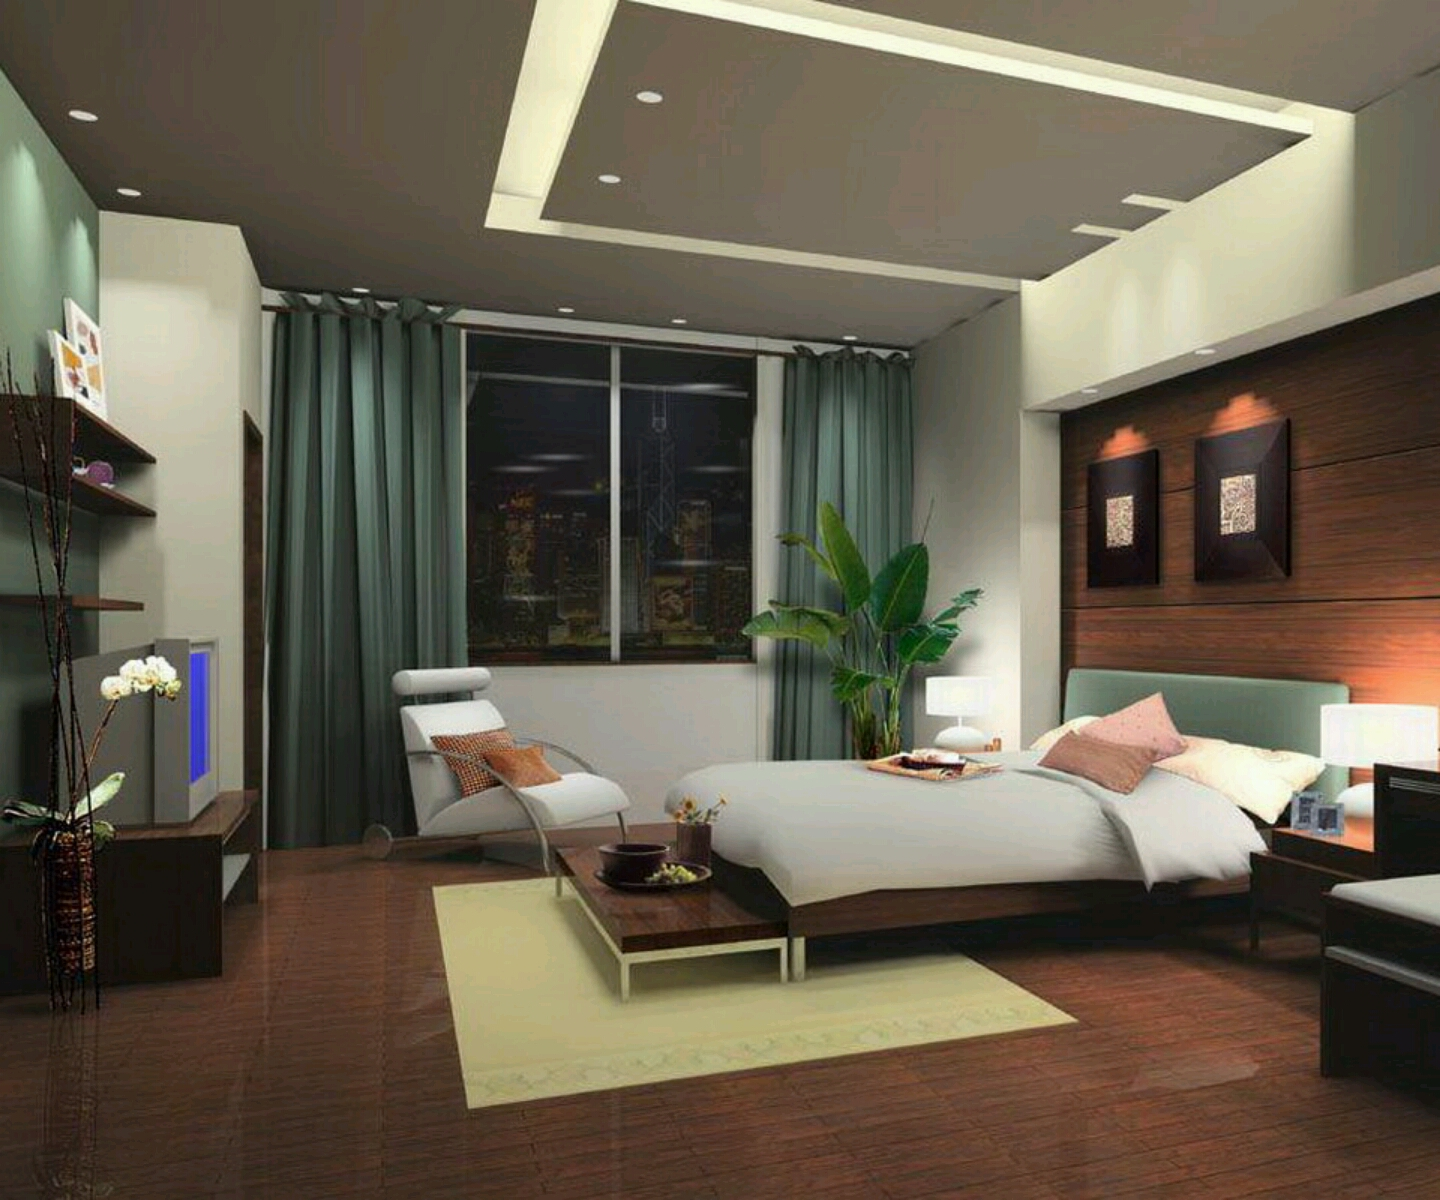 New home designs latest modern bedrooms designs best ideas for Bedroom modern design